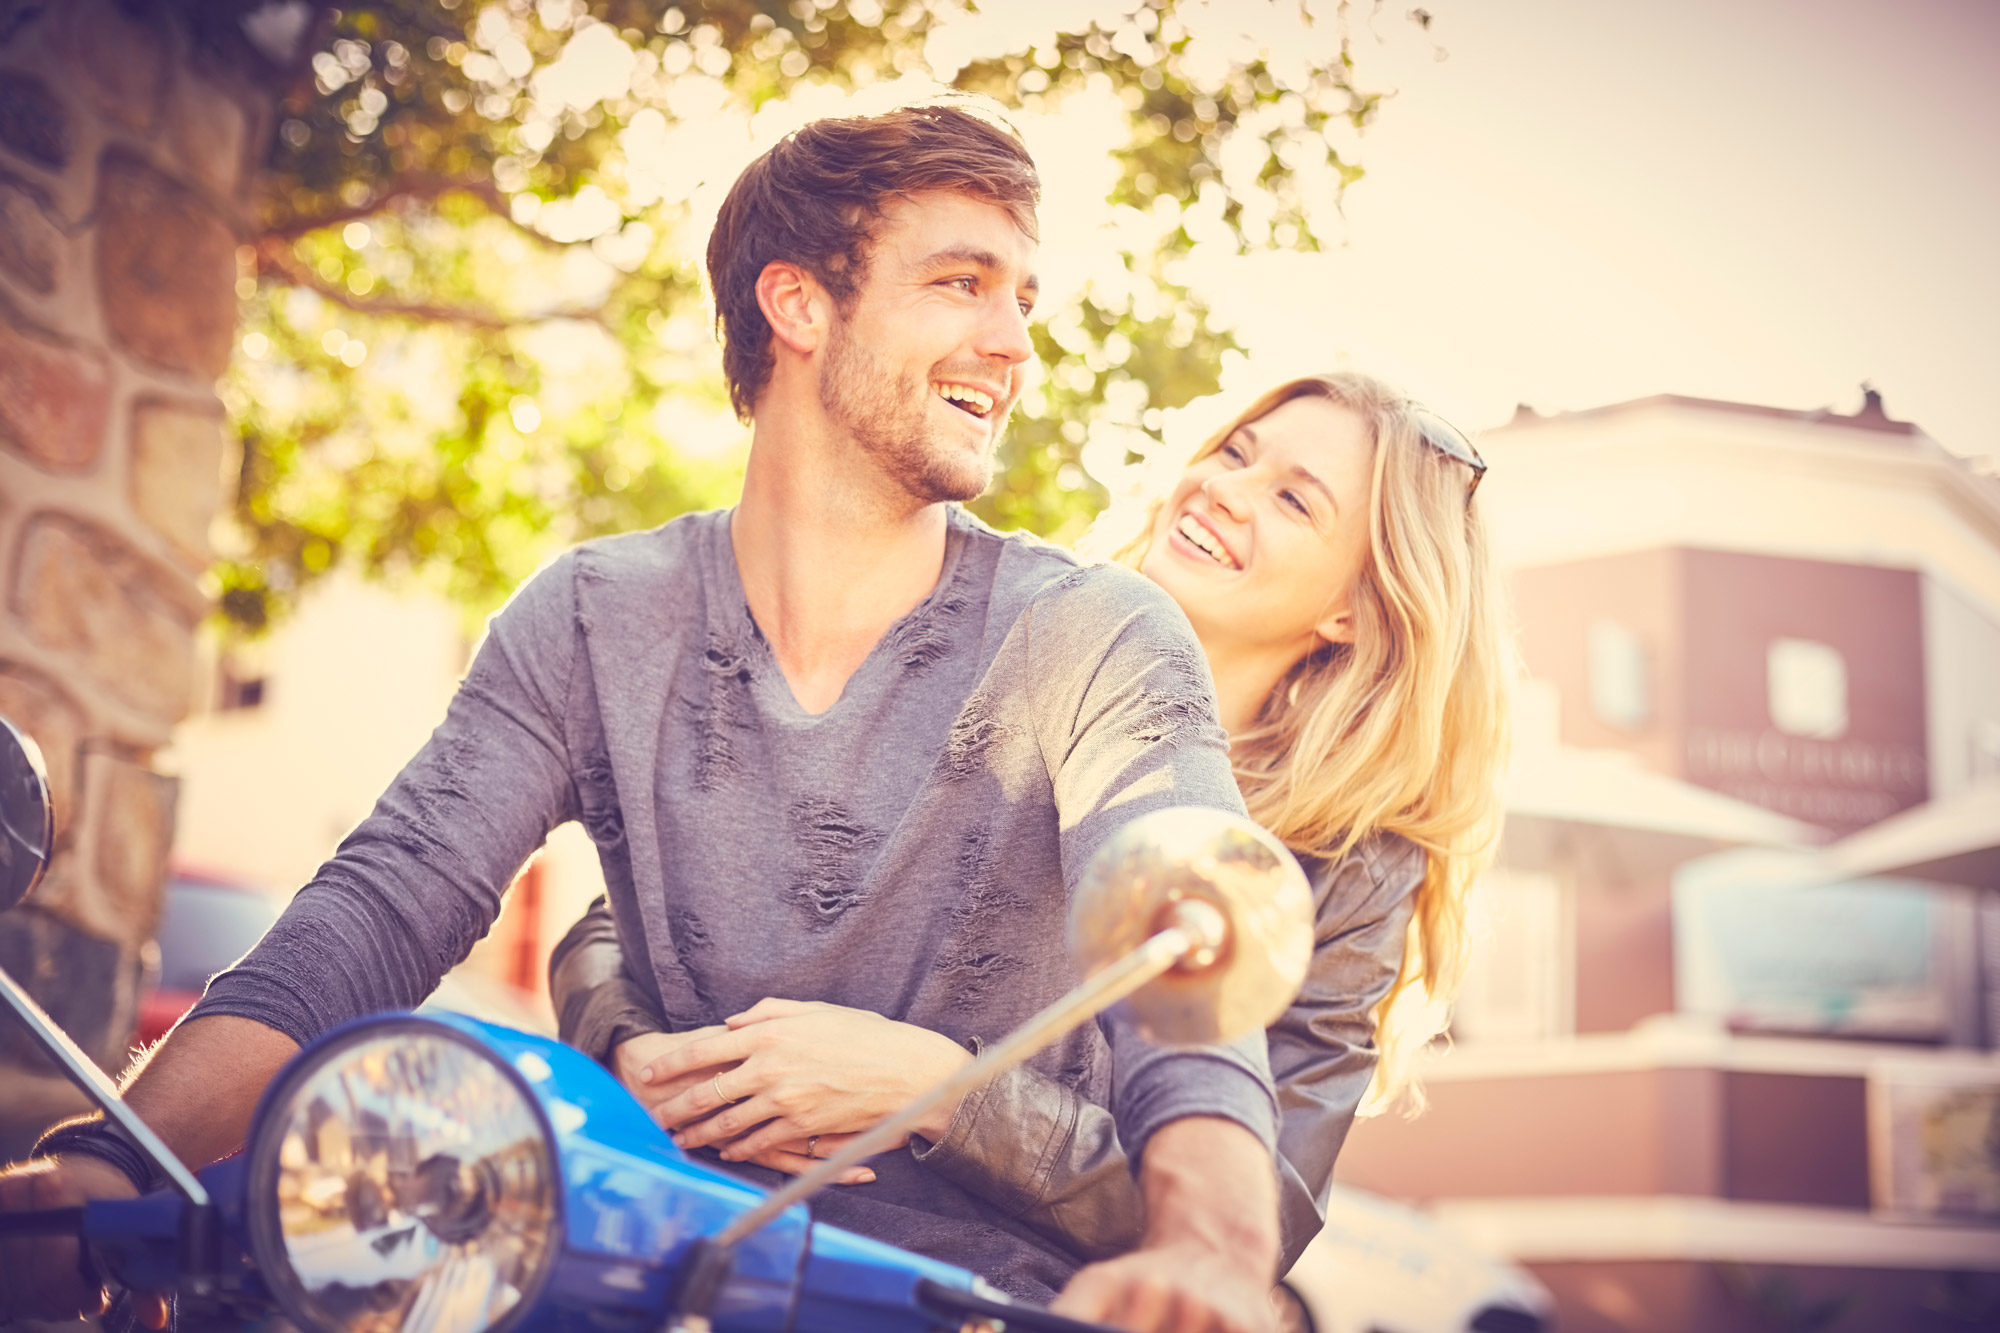 Man and woman smiling on moped